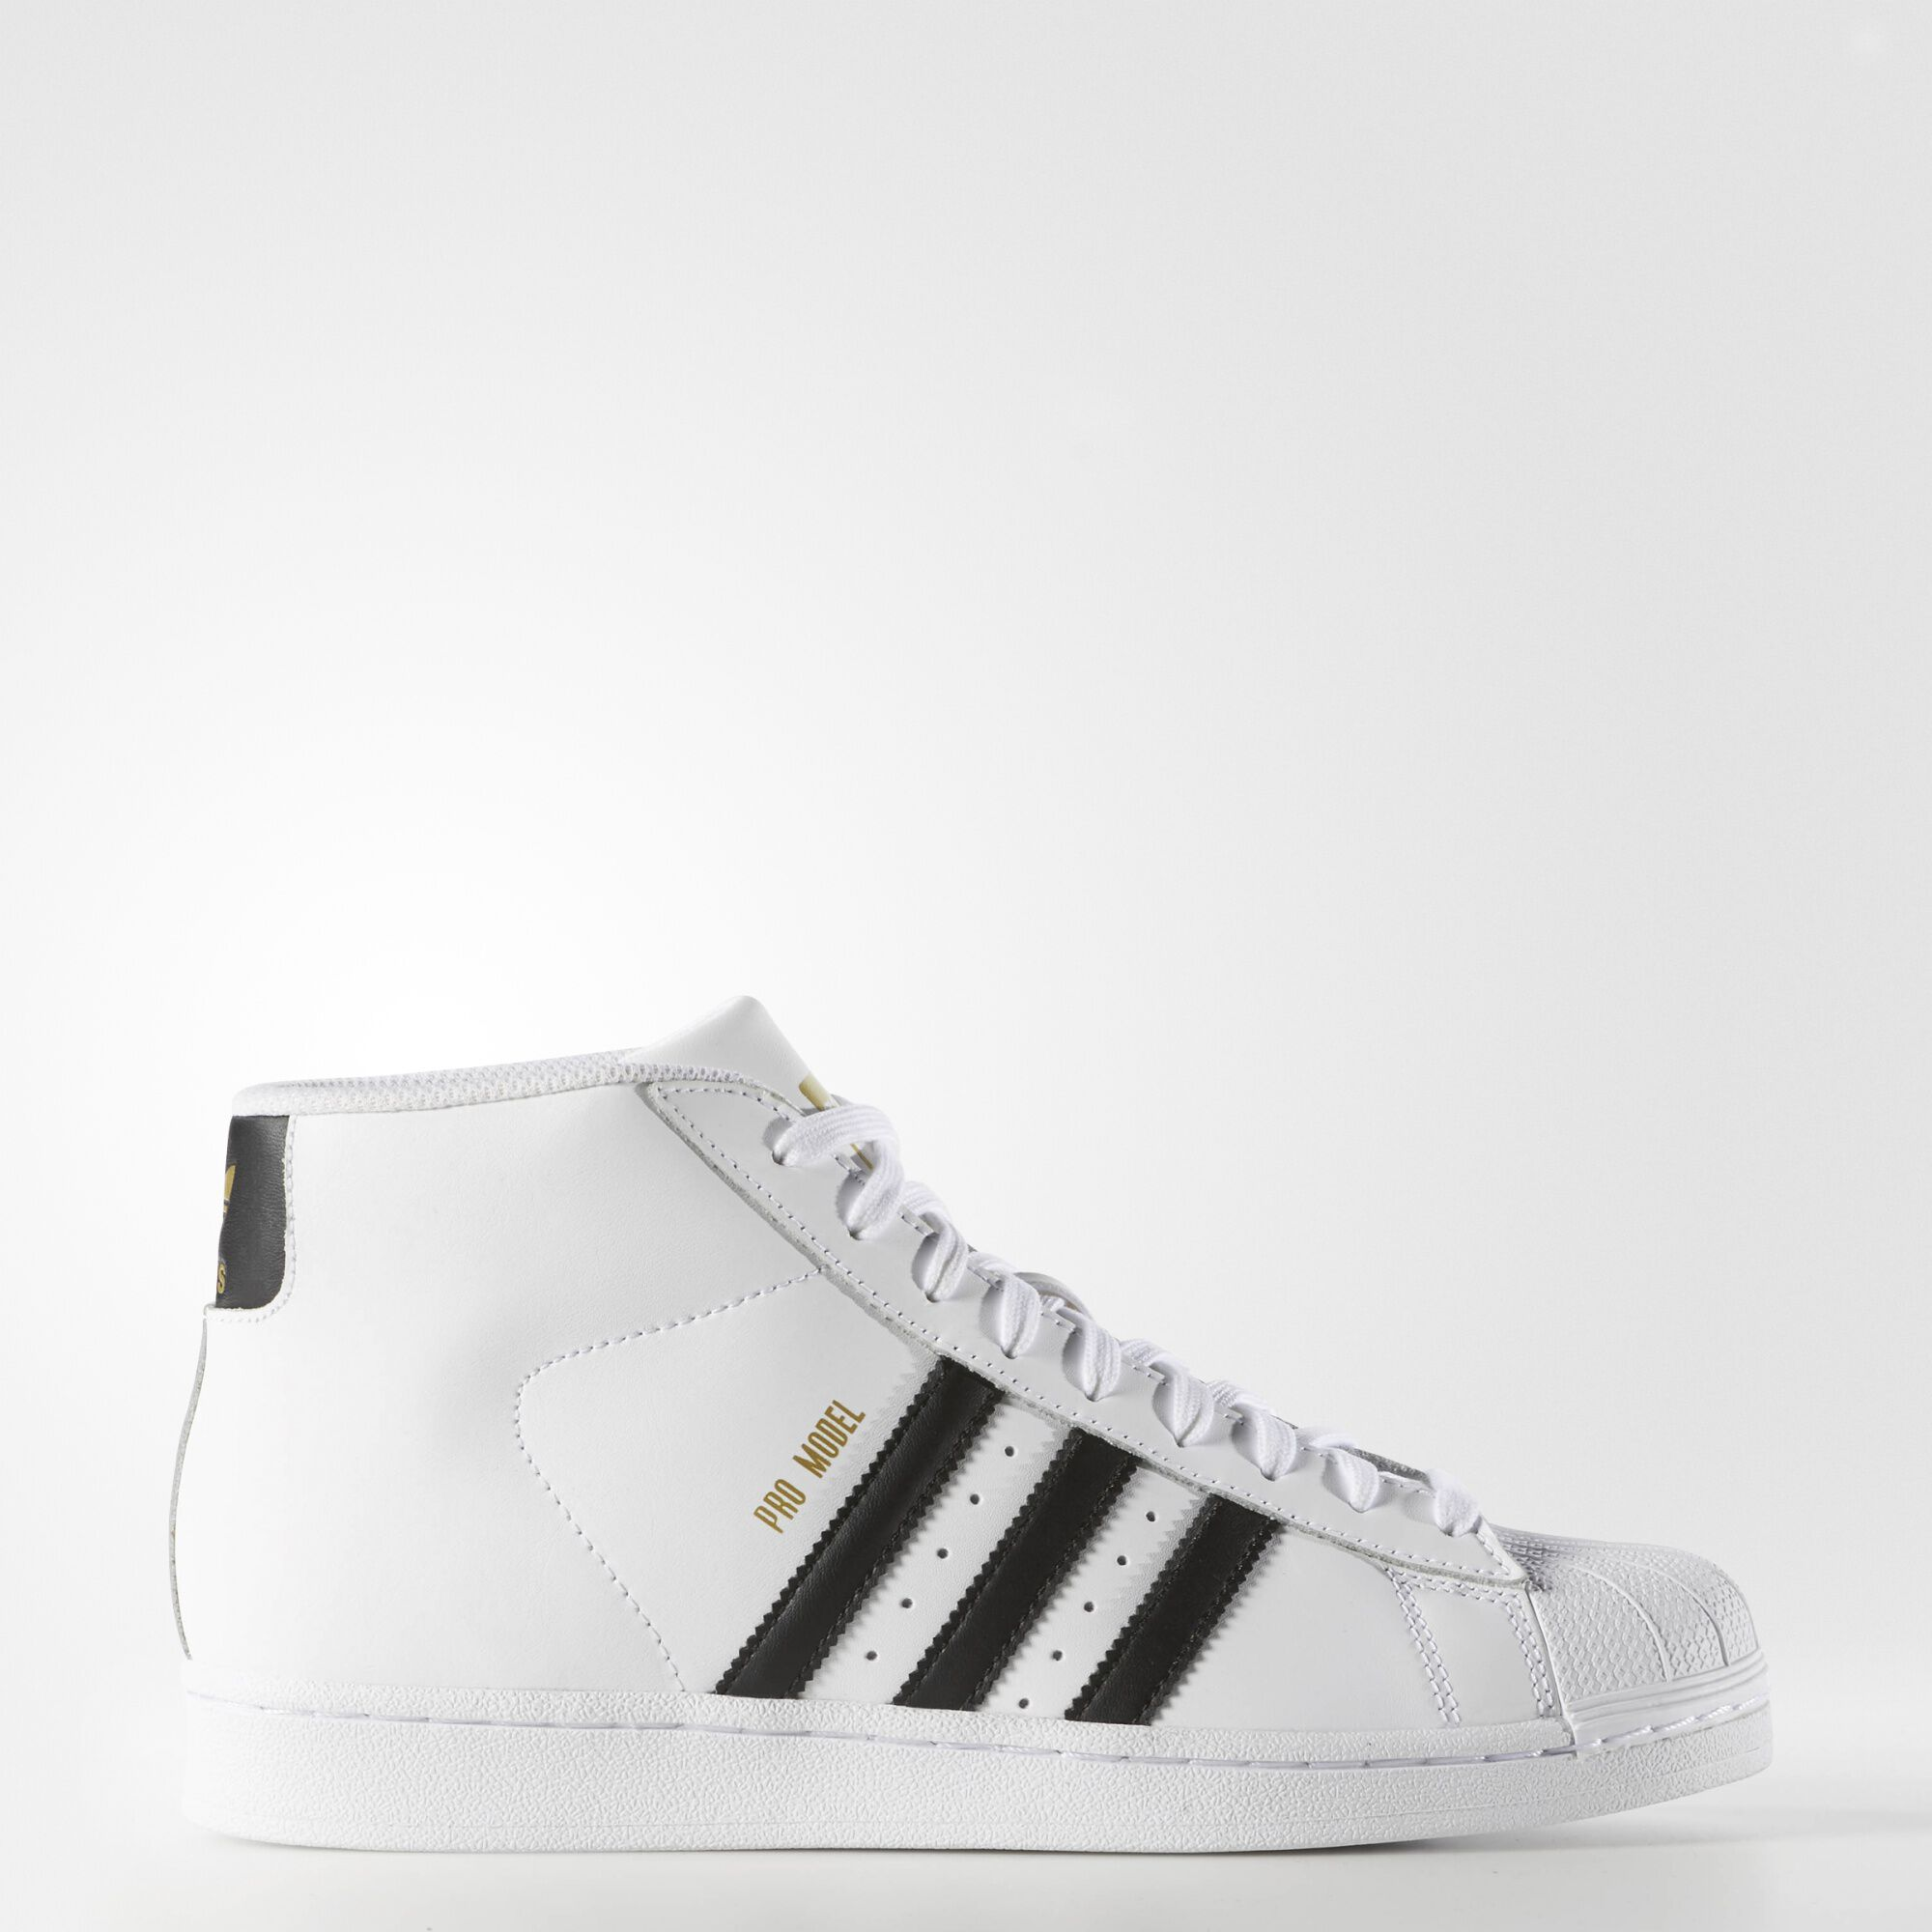 adidas superstar pro model ii